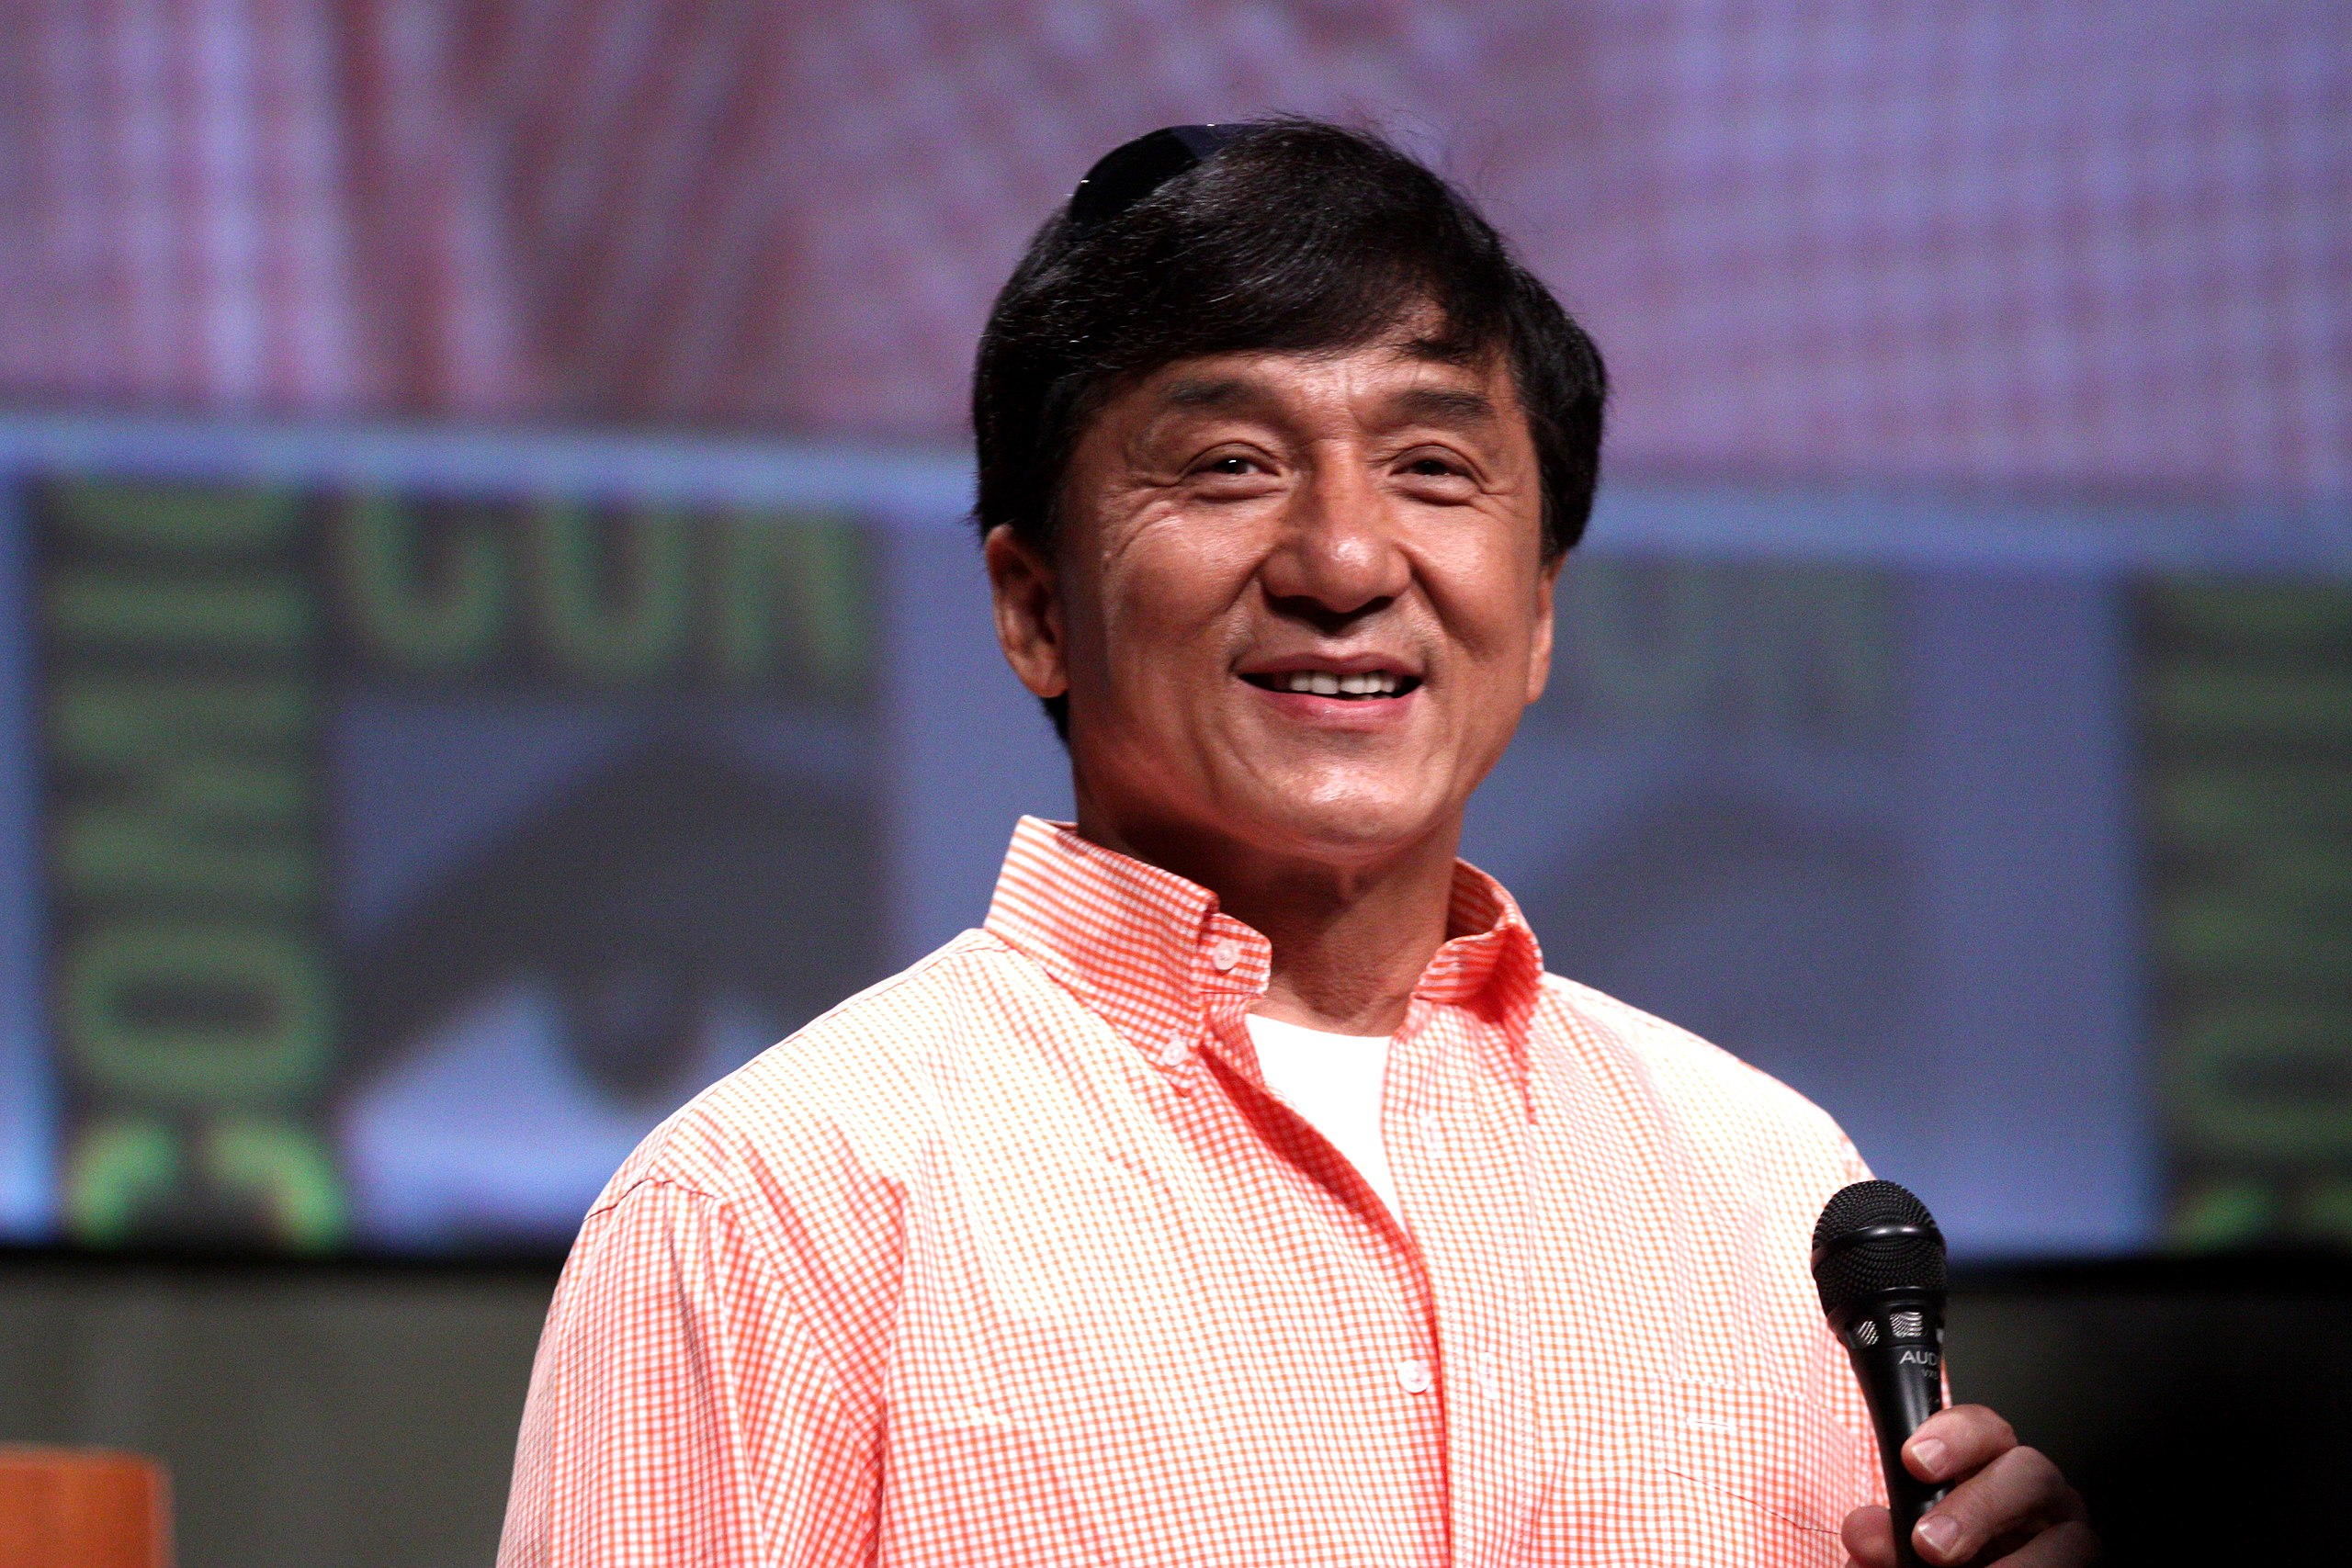 'Dragon Ball': Jackie Chan had a plan for a live action movie - Olhar Digital